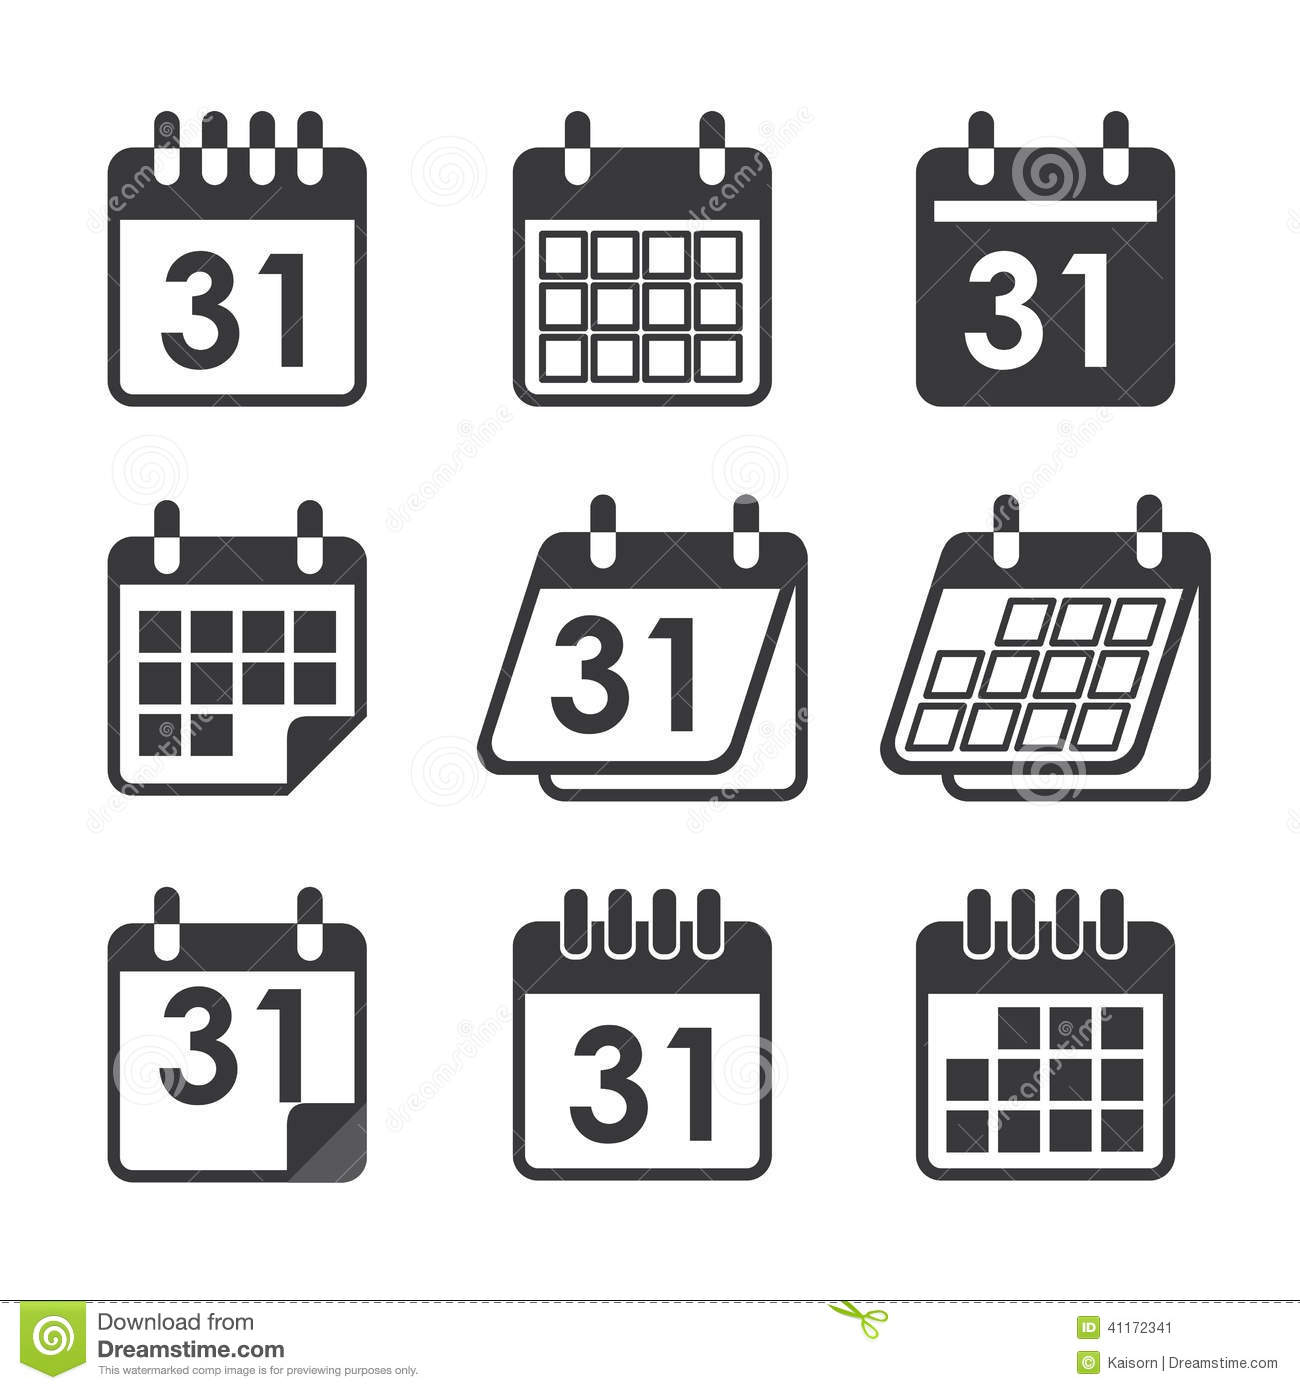 Calendar Web Icon : Icon calendar stock vector illustration of plan calender